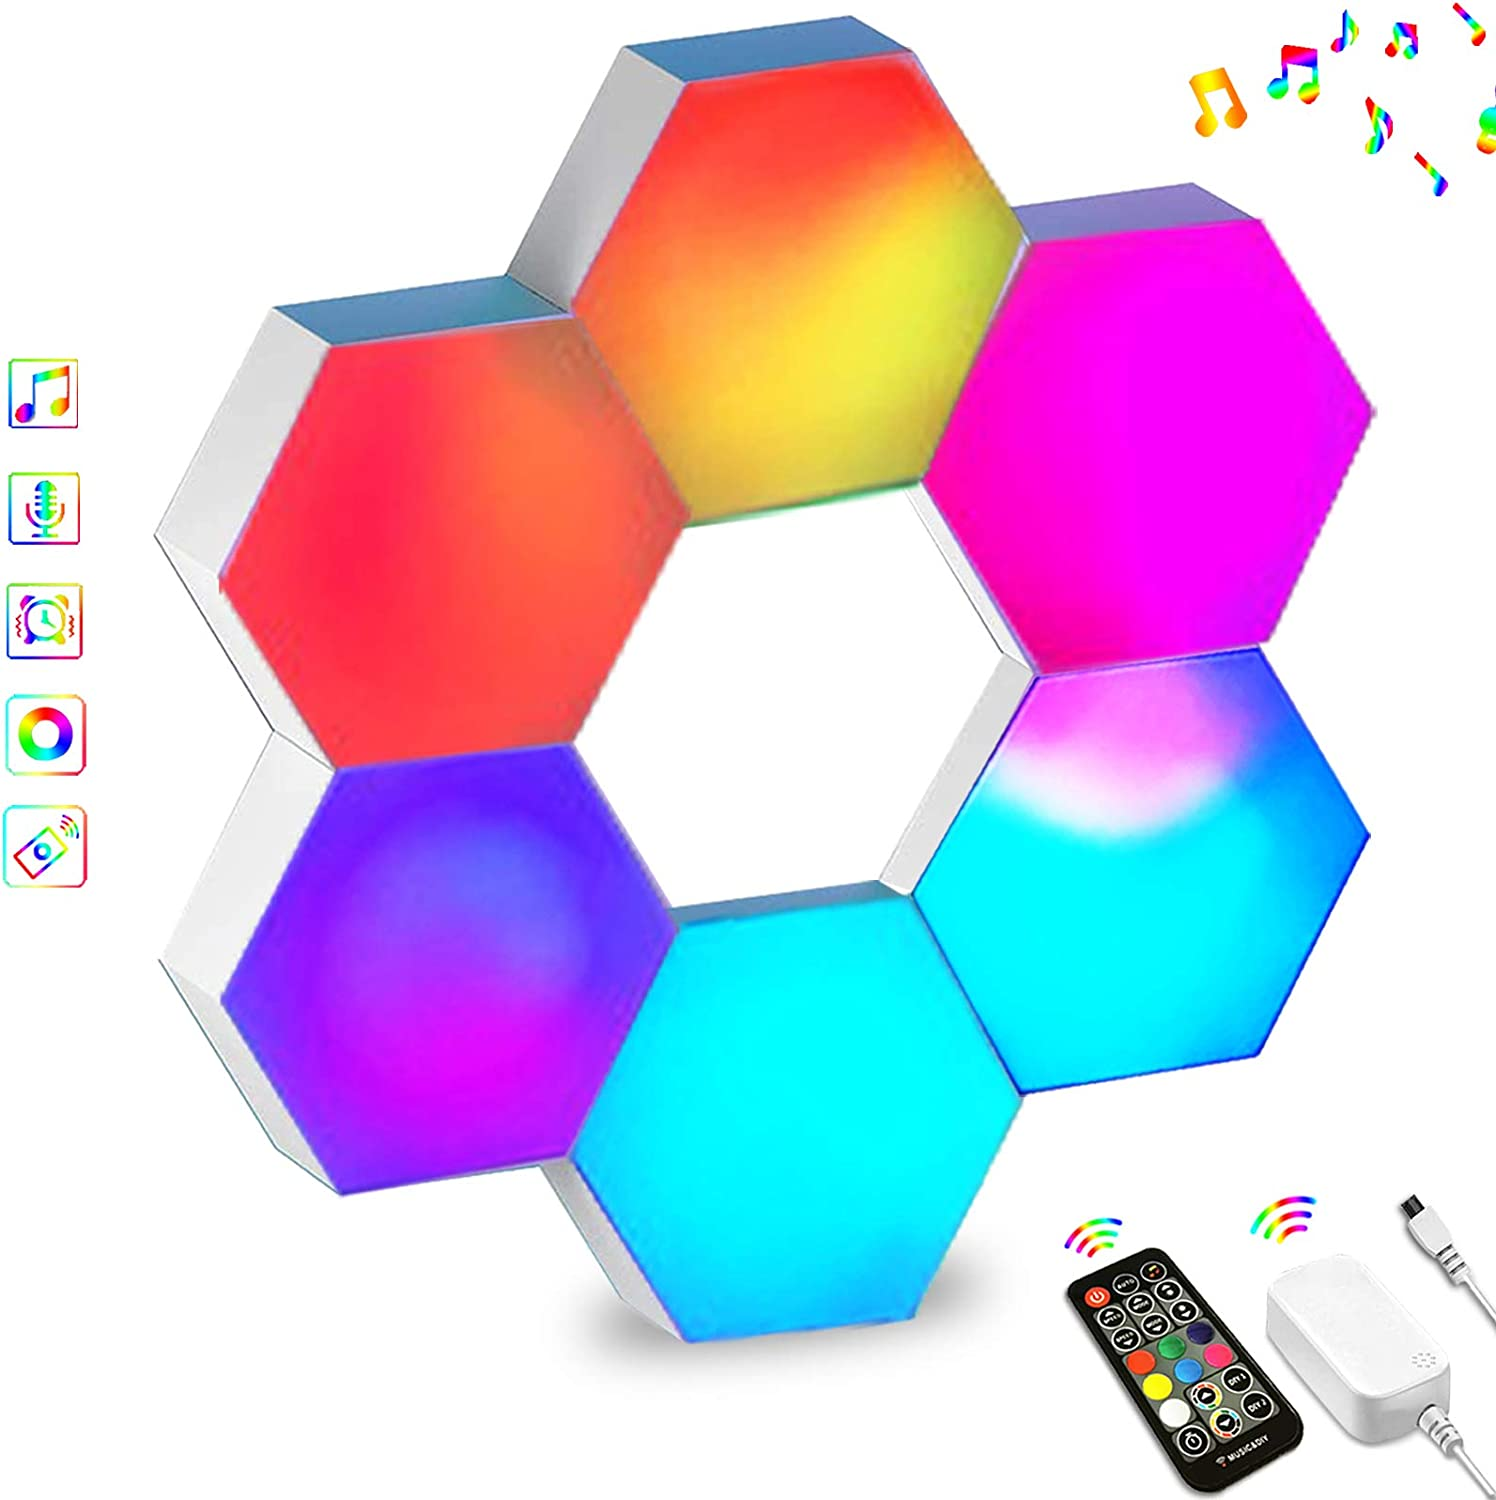 Hexagon Lights RGB Sync with Music, Smart LED Wall Lights with RF Remote Built-in Mic,16 Million Colors Modular Light Panels DIY Geometry Splicing Night Light for Gaming Setup/Bedroom/Bar/Cafe, 6 Pack